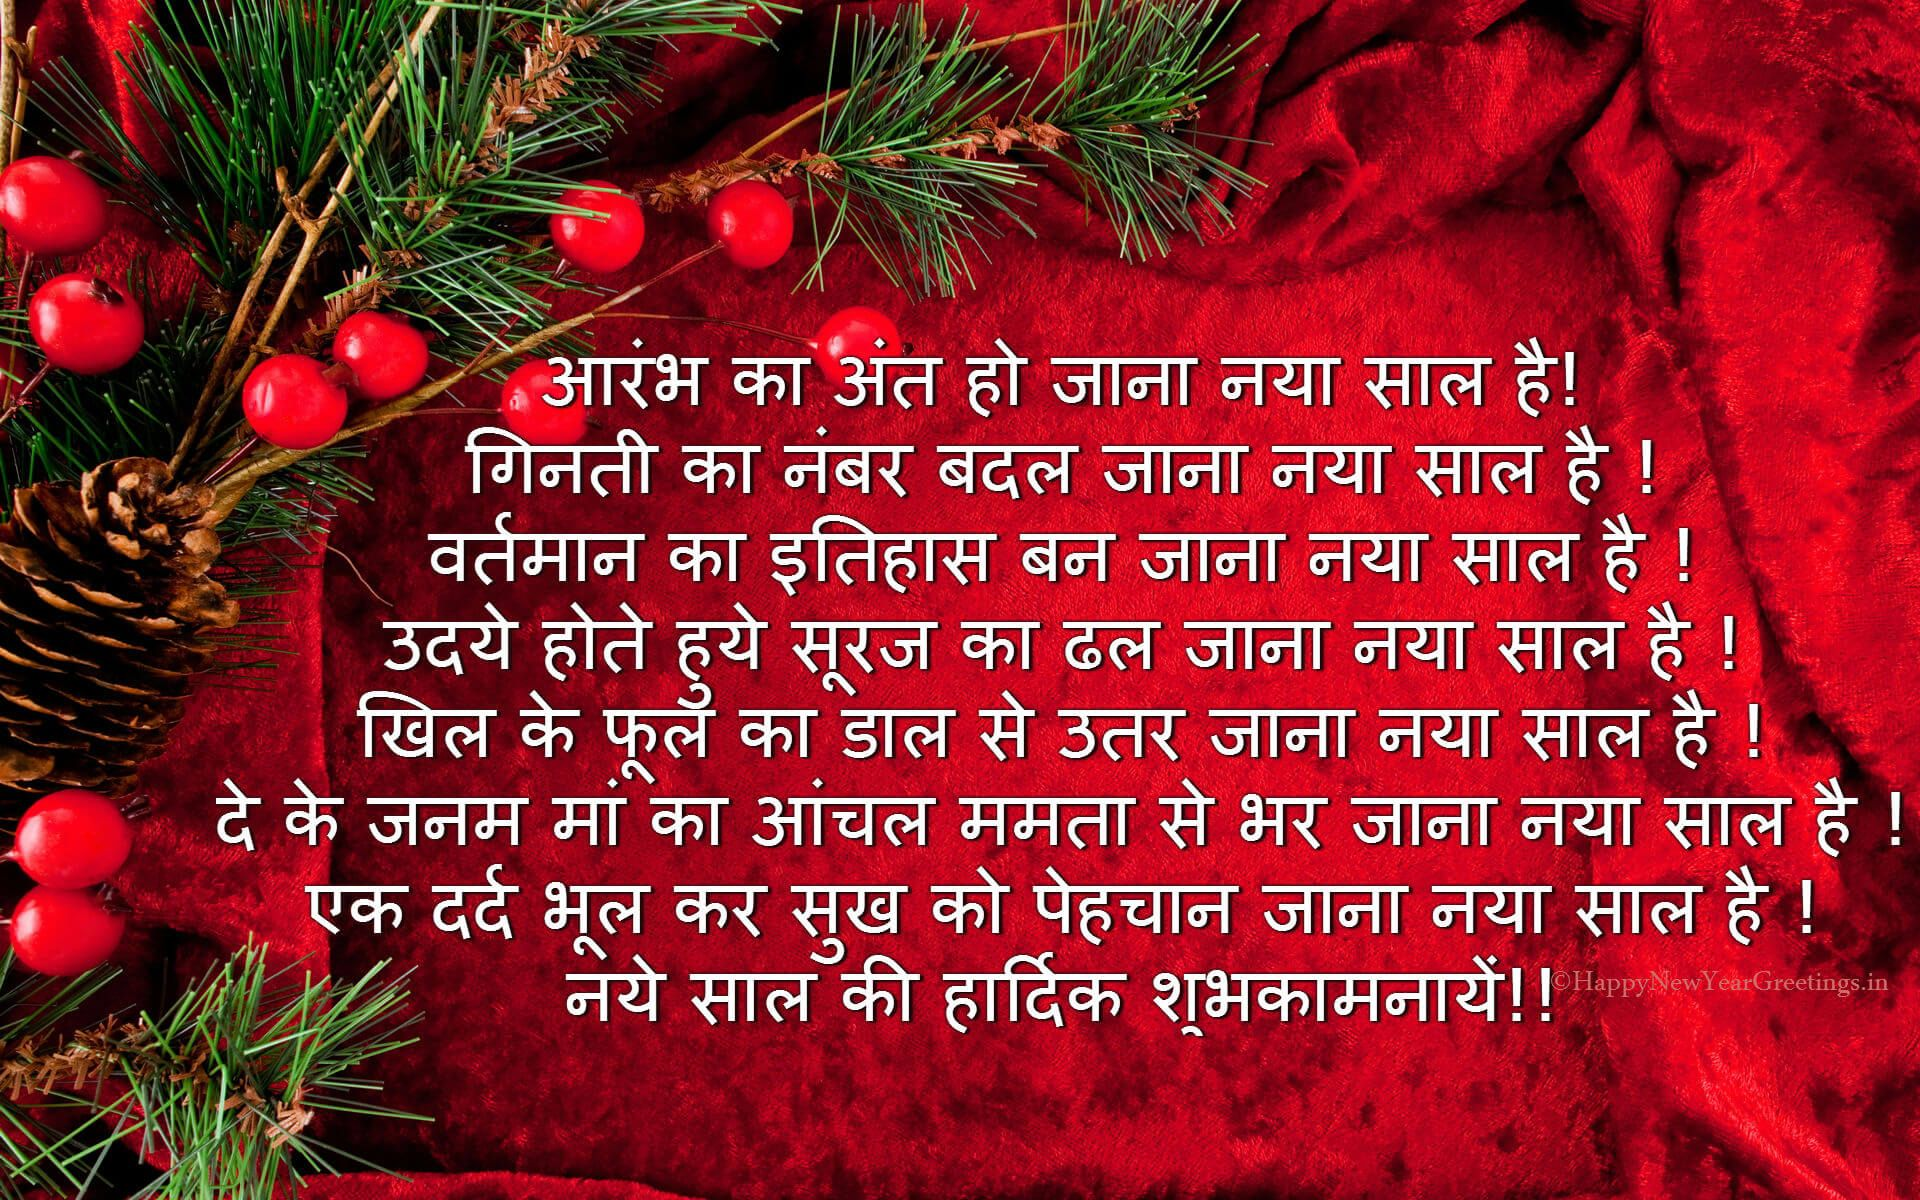 Happy new year 2018 poems in hindi poems in hindi for status happy new year 2018 poems in hindi poems in hindi for status kristyandbryce Gallery